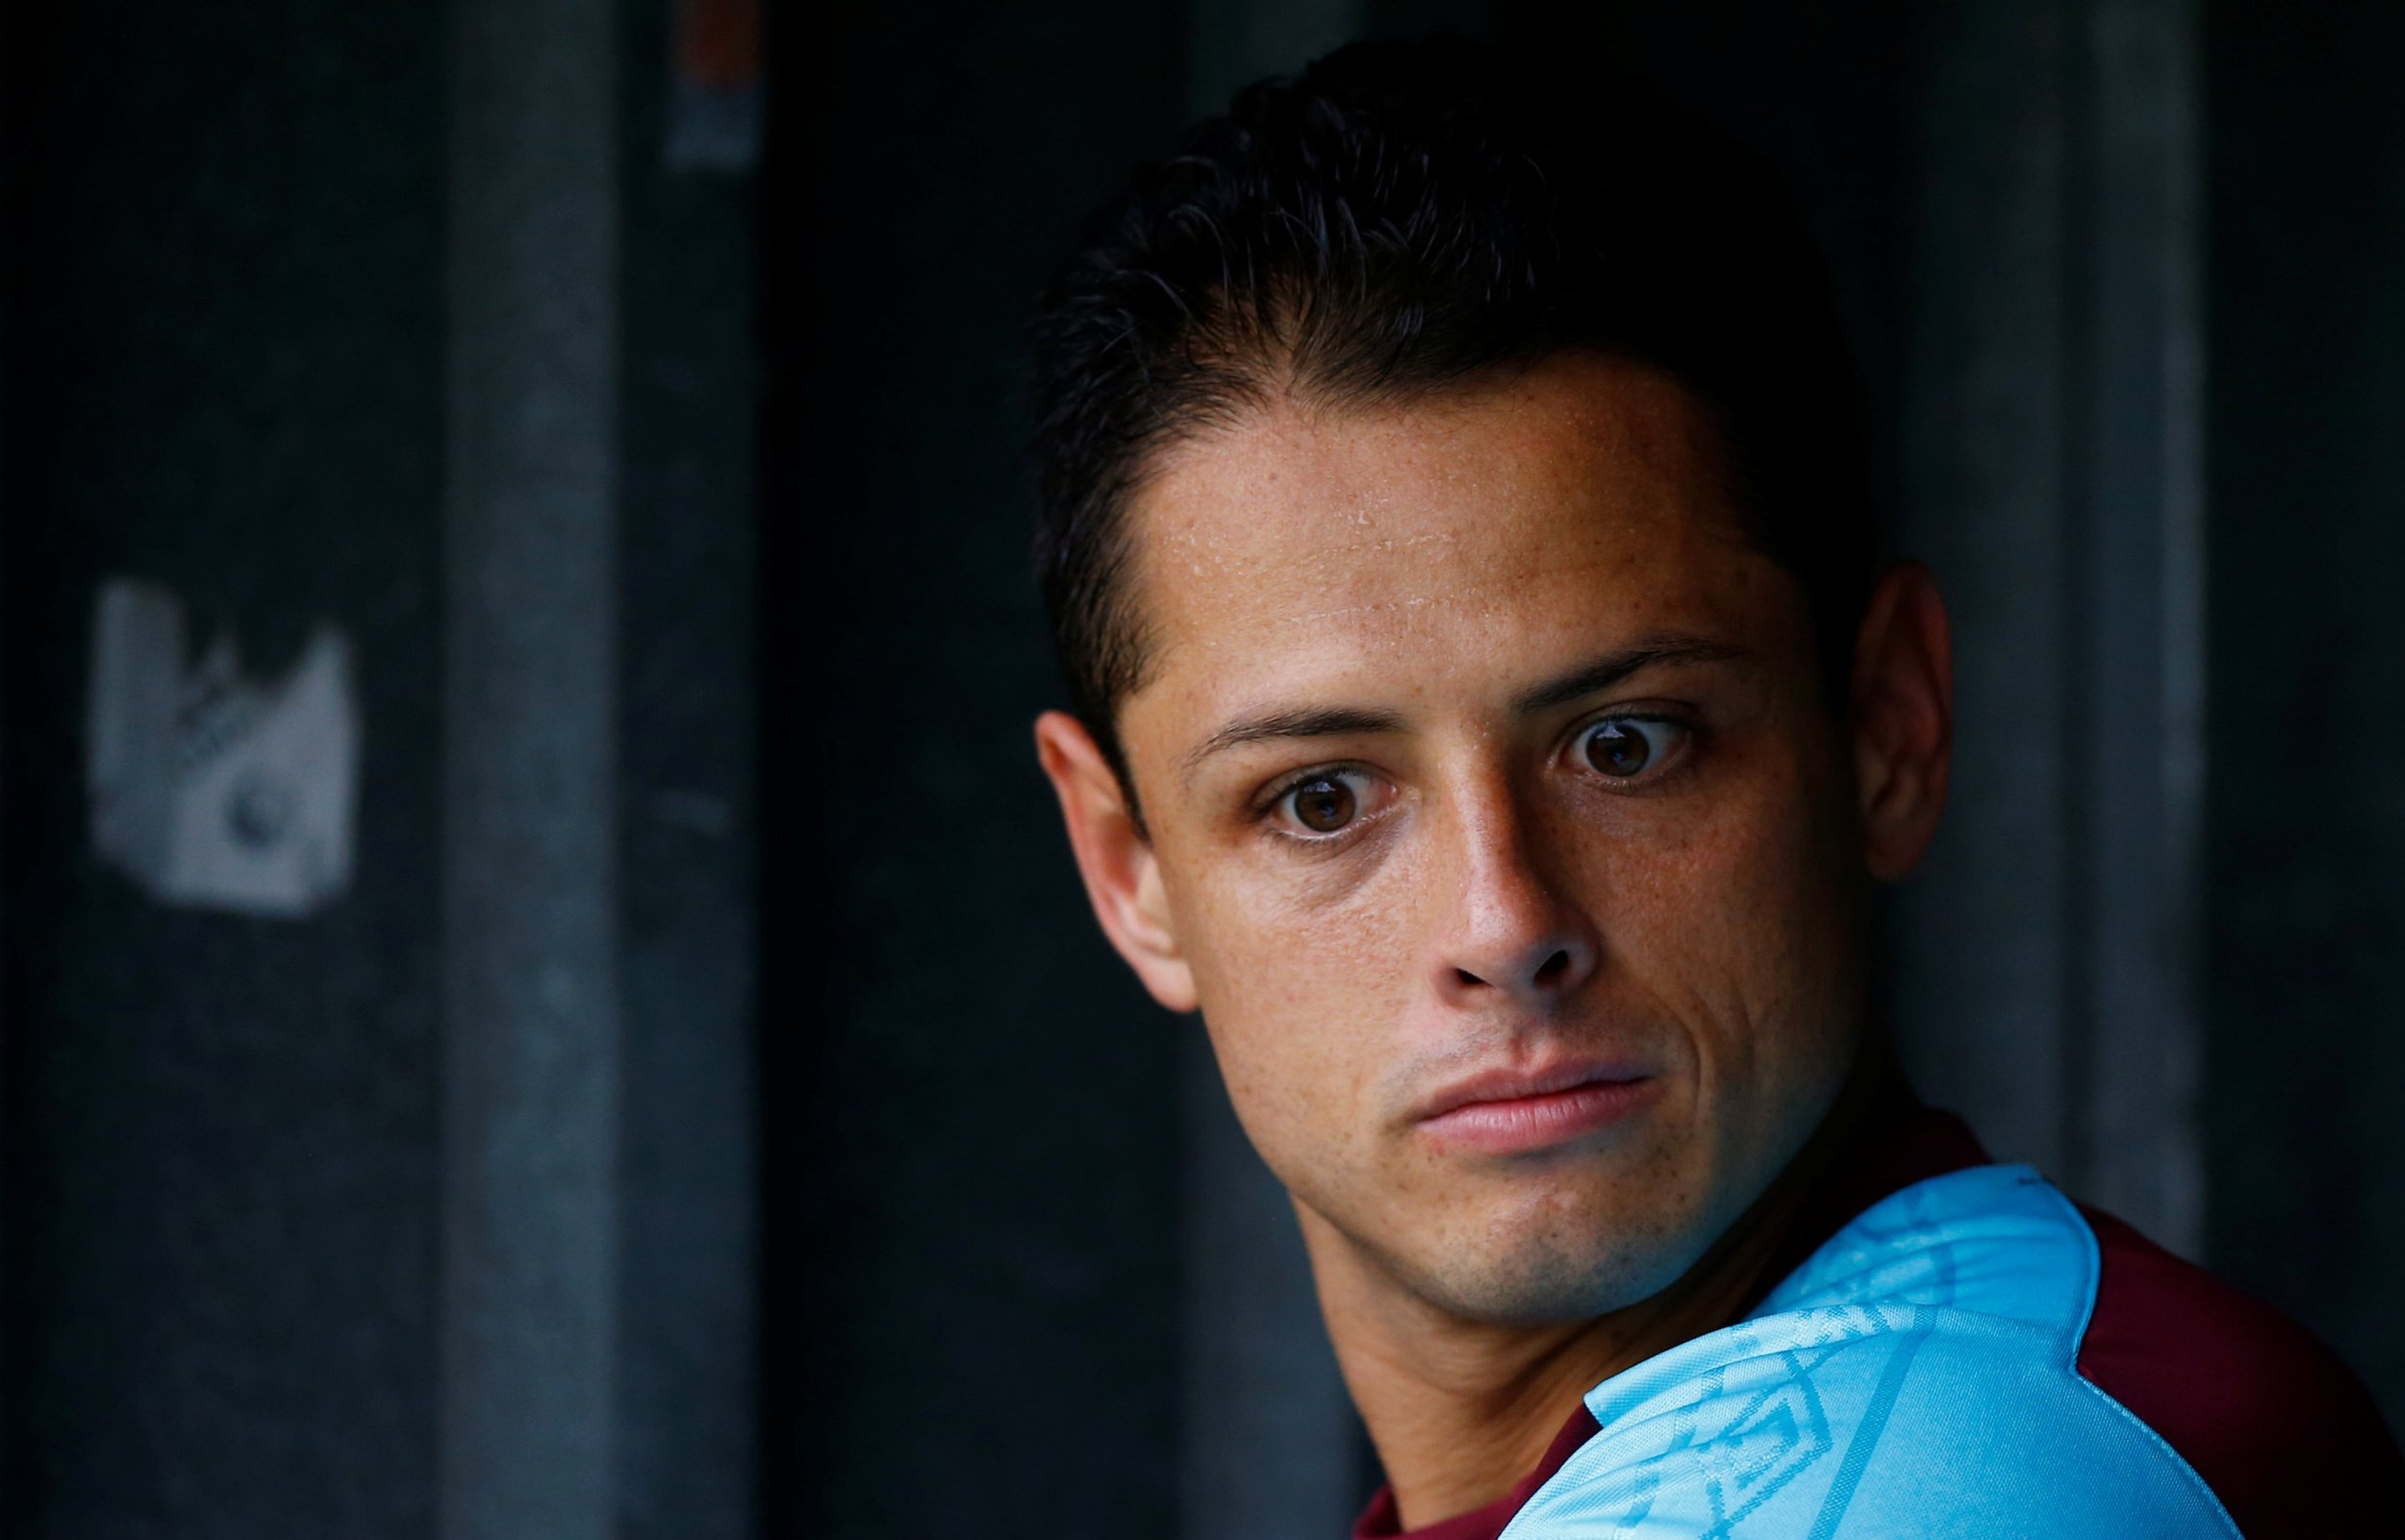 Javier Hernandez yet to decide if he will celebrate goal against Manchester United